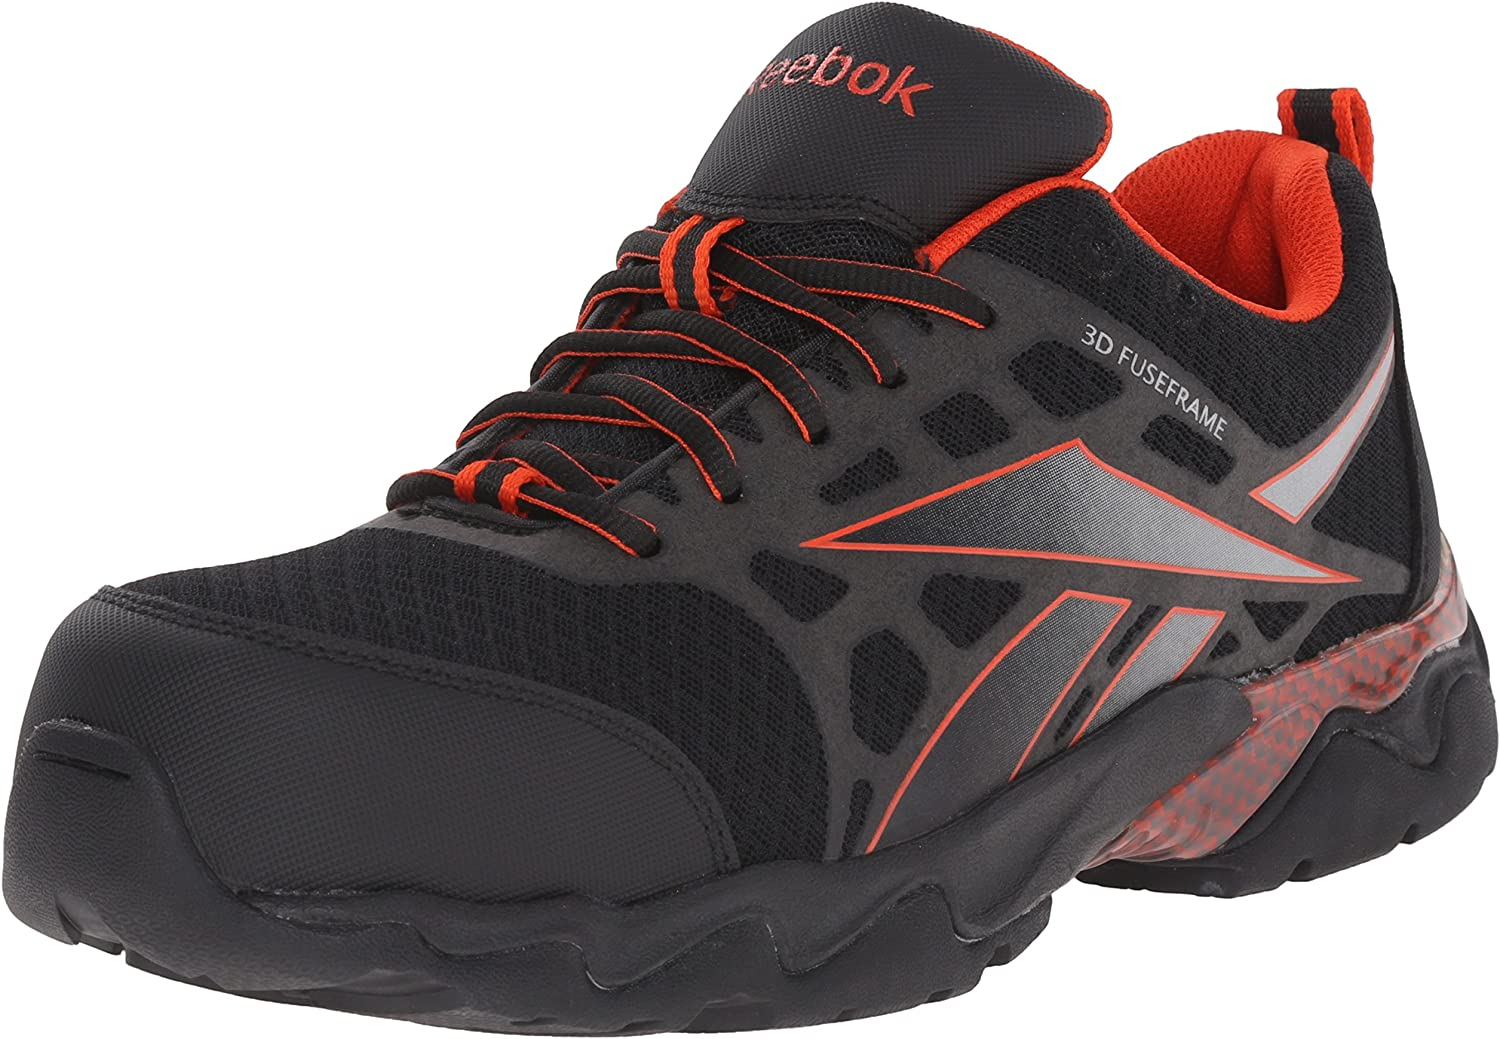 Beamer RB1061 ESD Athletic Safety Shoe